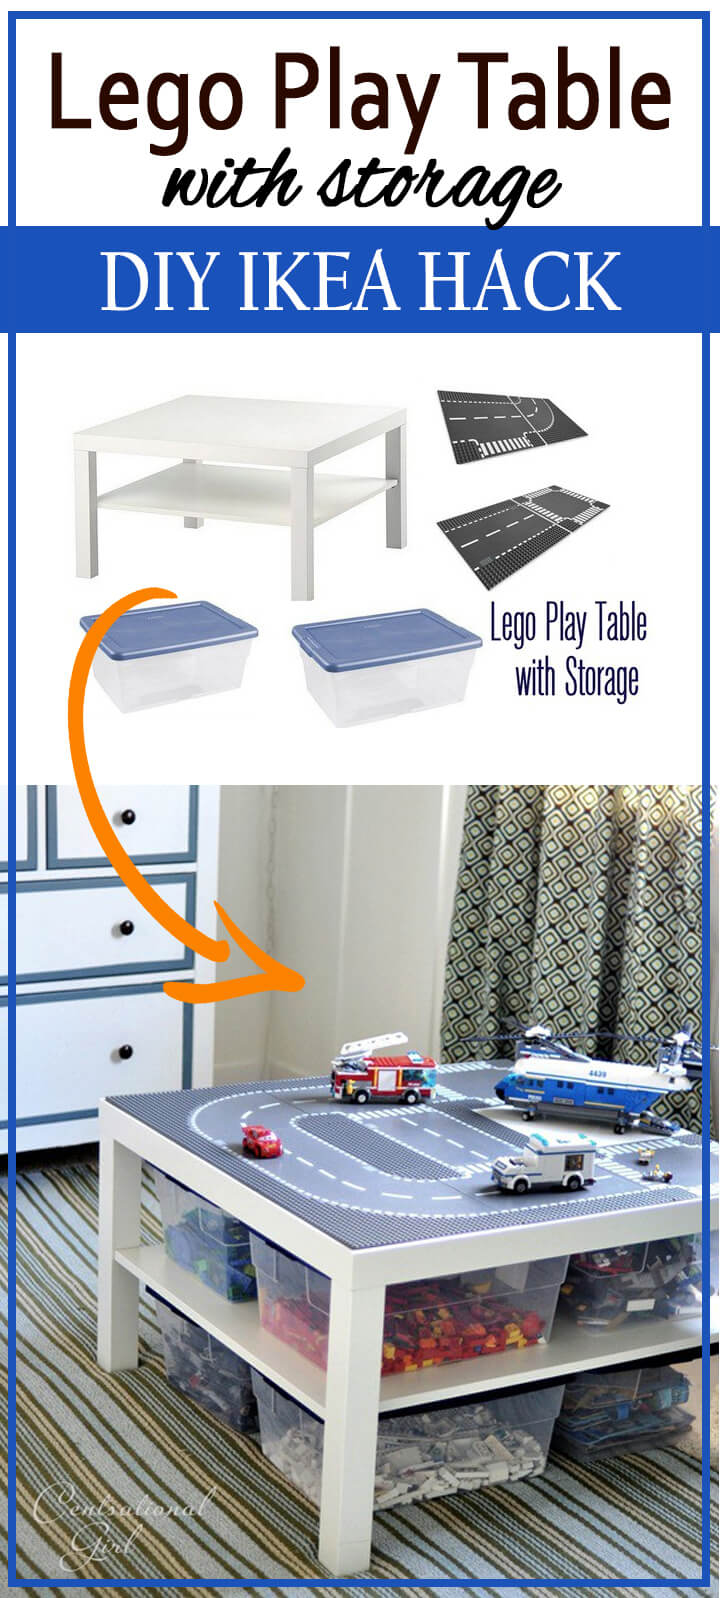 Efficient and Pristine Play Table